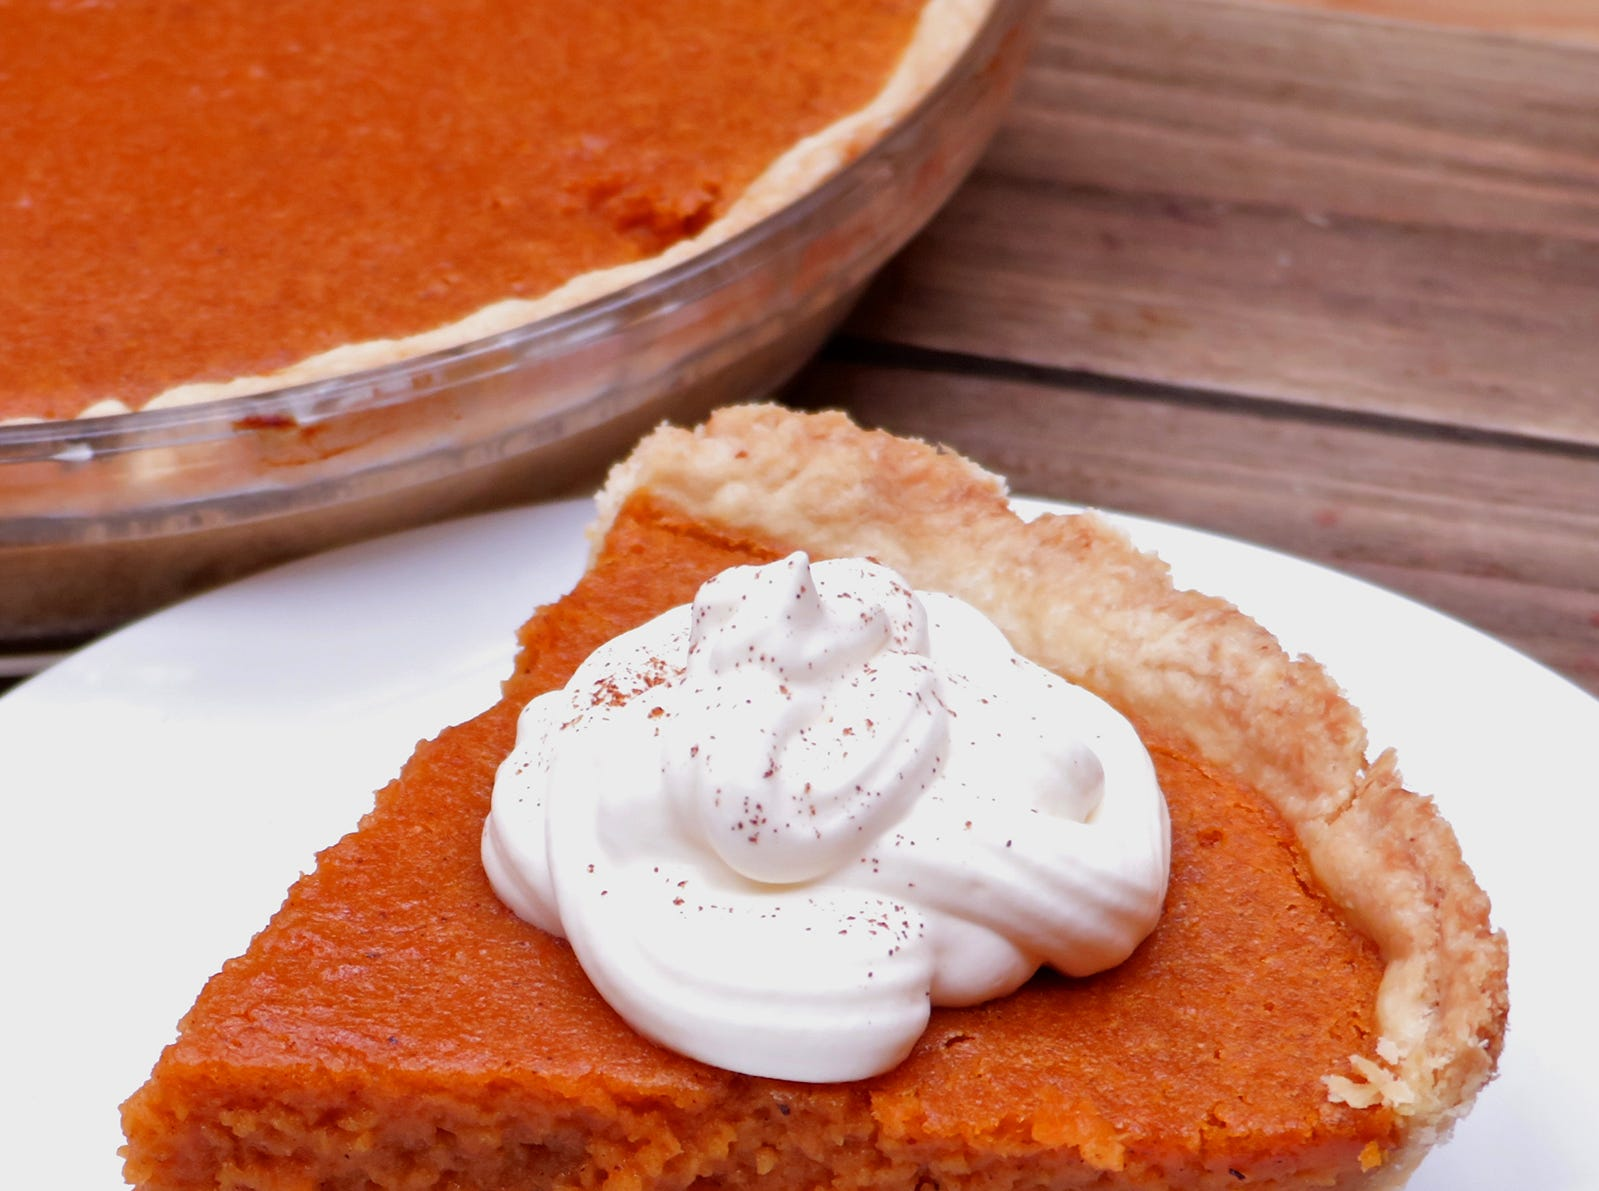 Give a Southern tradition a try with this delicious sweet potato pie recipe! While most people think of pumpkin pie as the iconic Thanksgiving dessert, its tuber cousin produces a pie that's equally traditional and delicious.